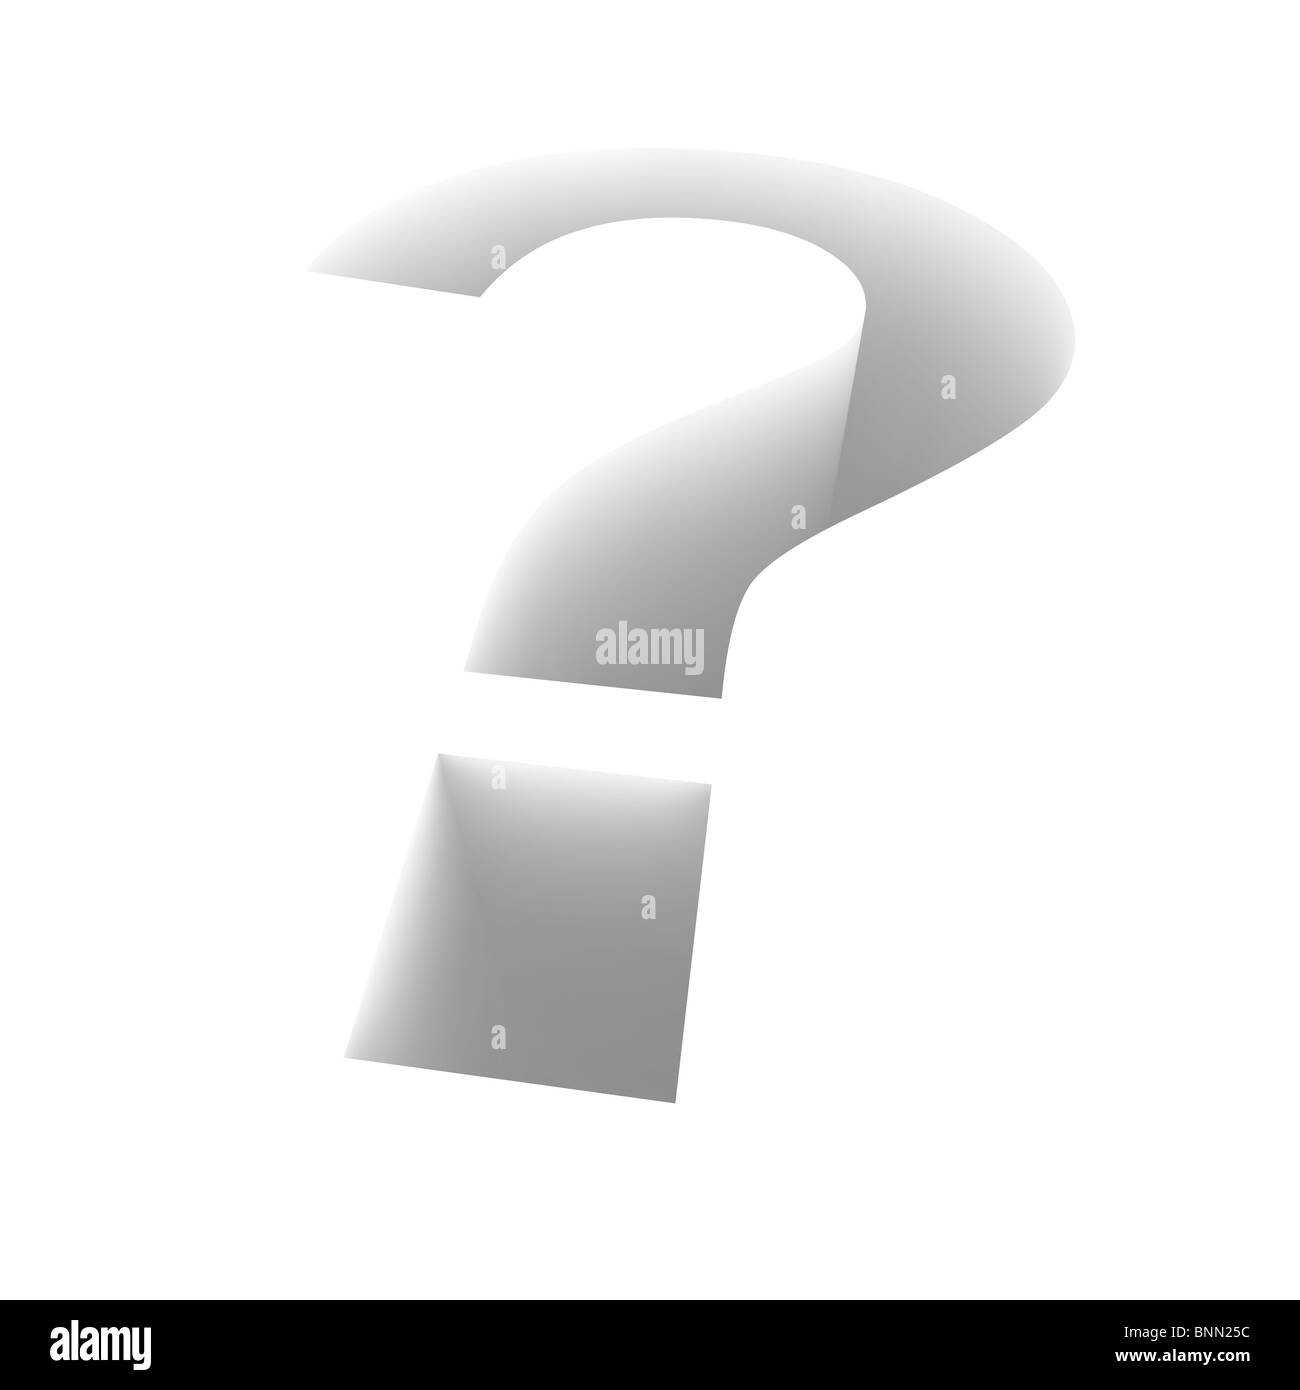 Extruded question mark. 3d rendered illustration. - Stock Image